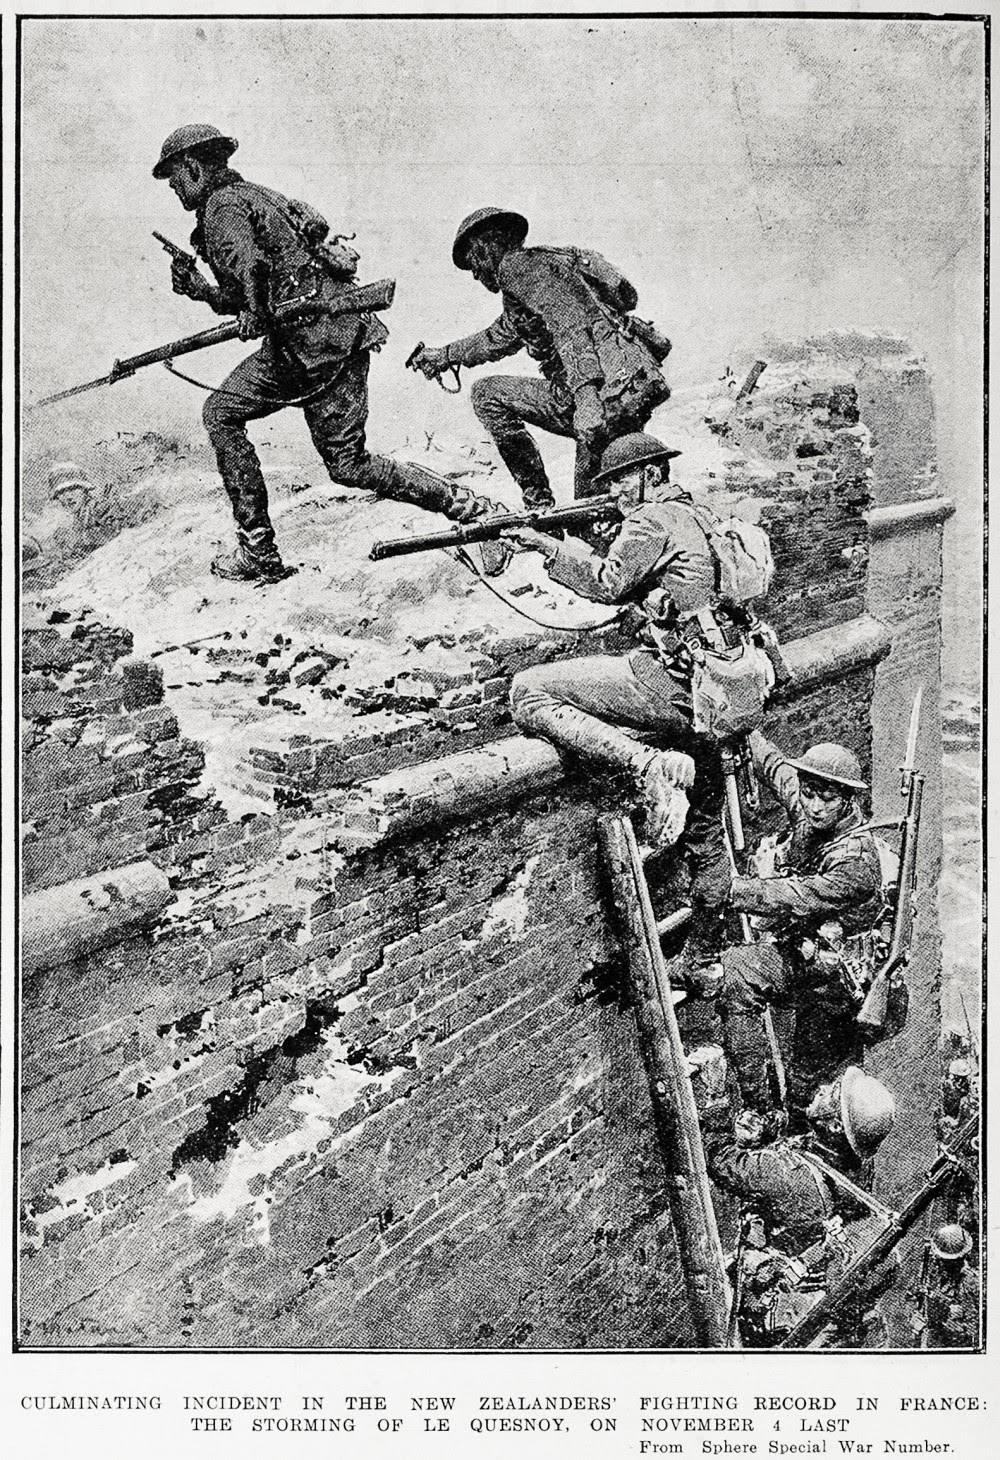 Click image for larger version.  Name:2.1. 0 1 scaling ladder storming of Le Quesnoy.jpg Views:1 Size:595.0 KB ID:3651229